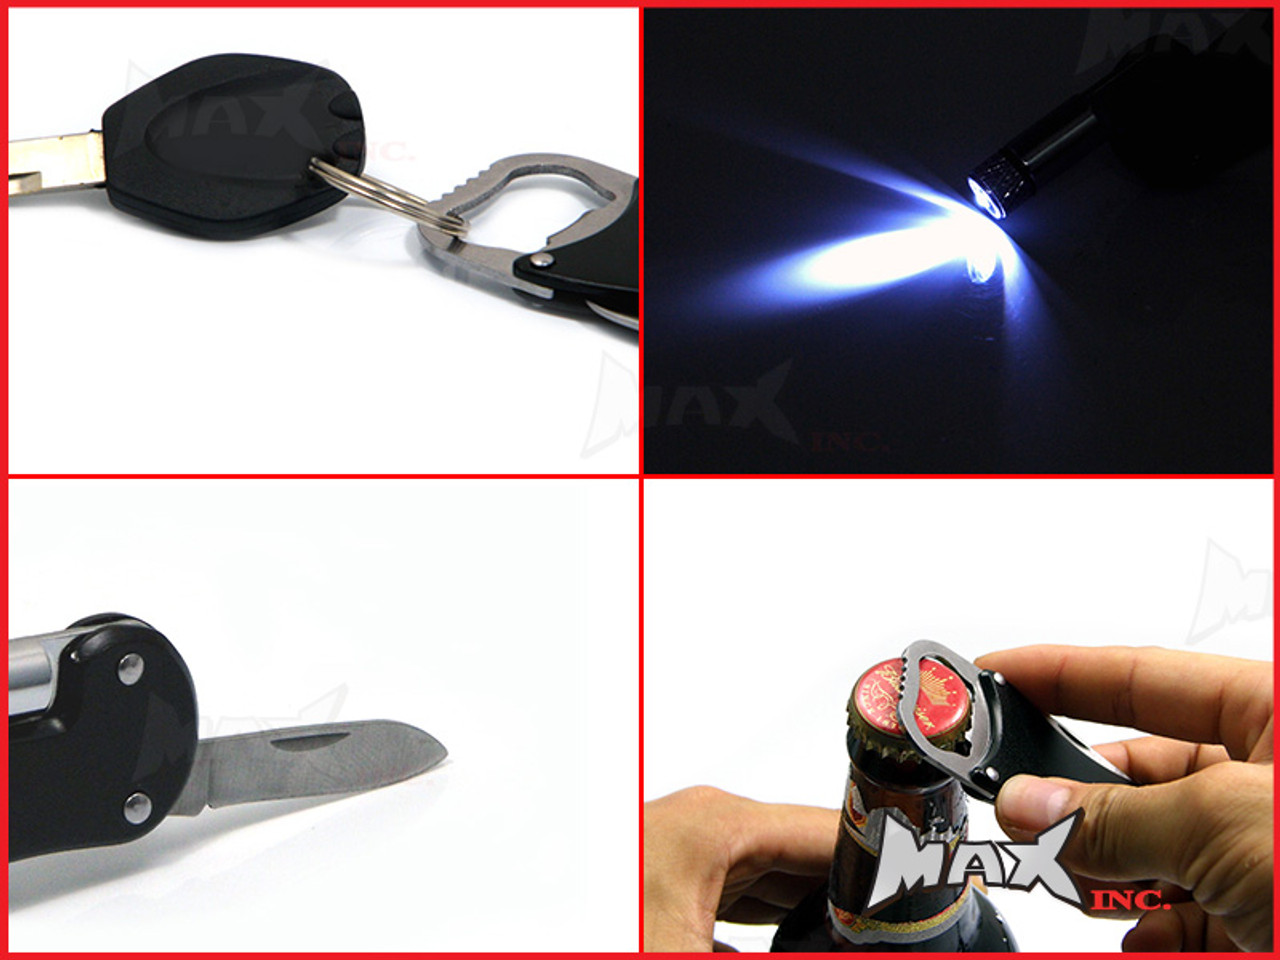 BMW S1000RR - Lasered Logo Keyring / Pocket Knife / LED Torch / Bottle Opener